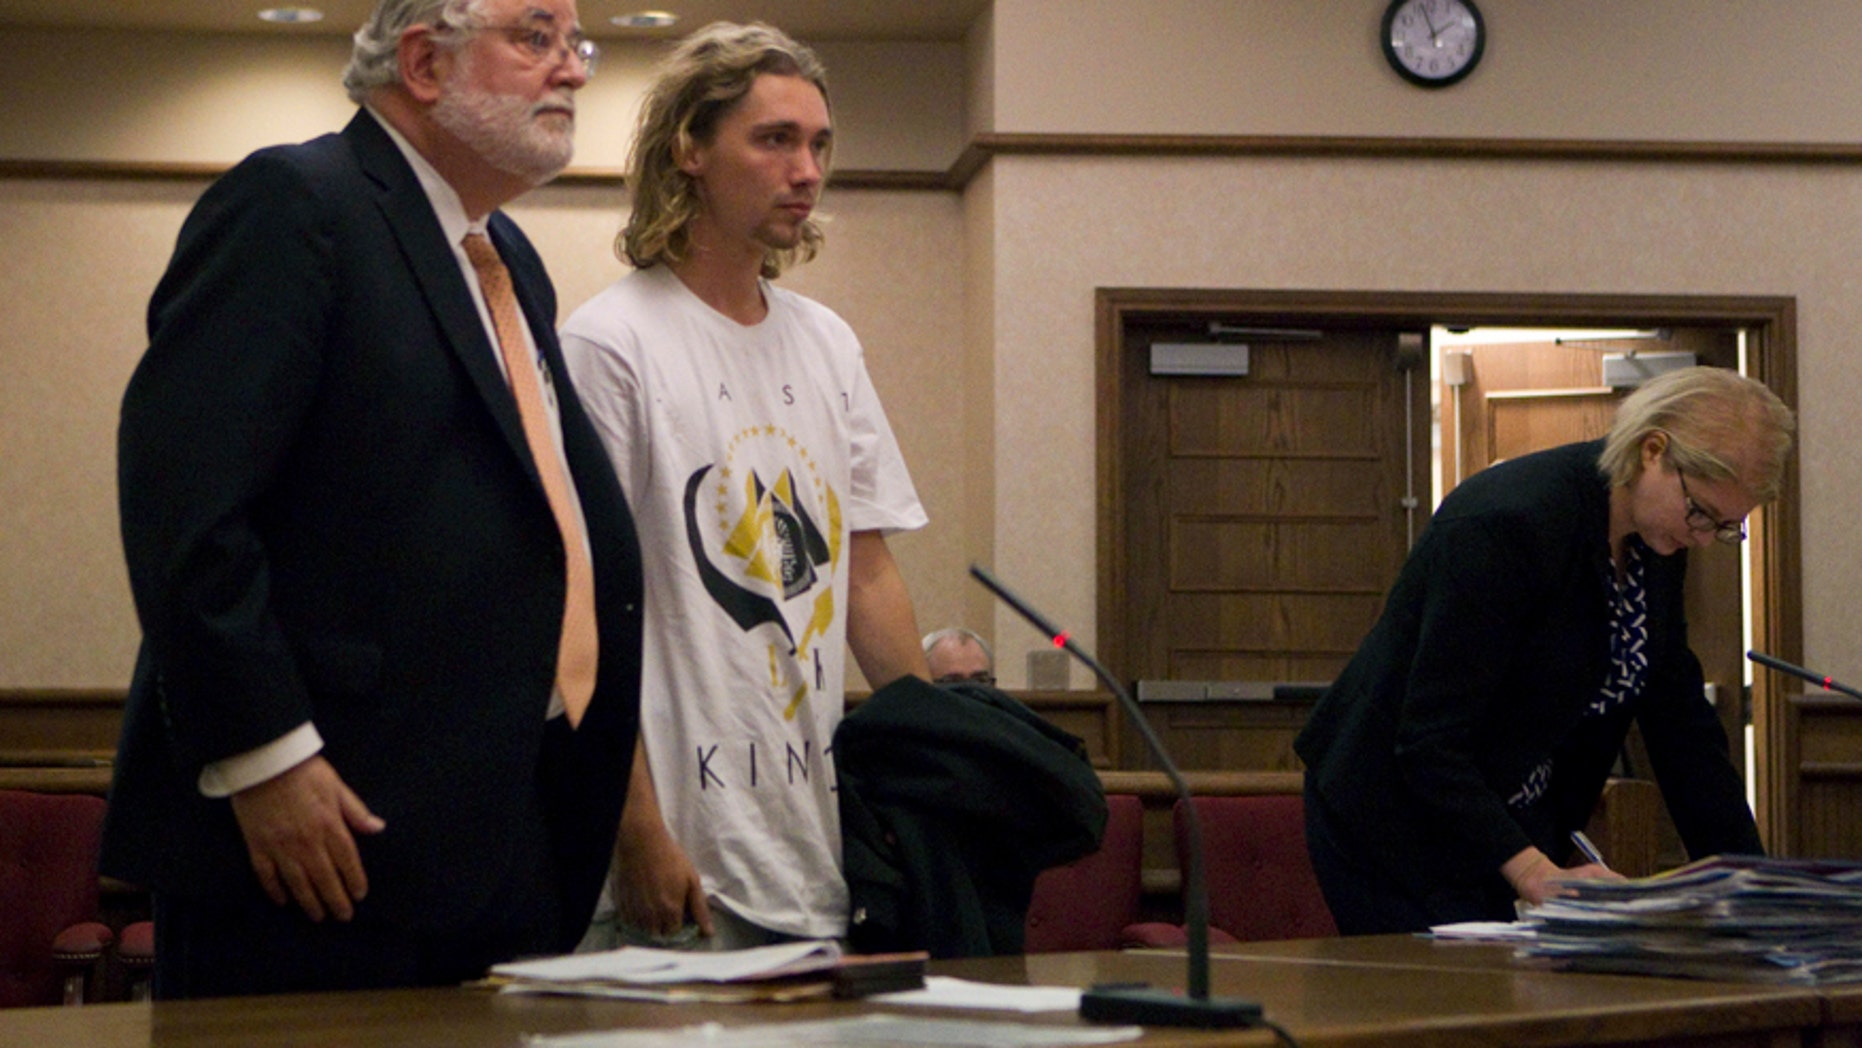 Jesse Helt appears in the Polk County courthouse for an arraignment regarding a probation violation in Dallas, Ore. Tuesday, Sept. 16, 2014.